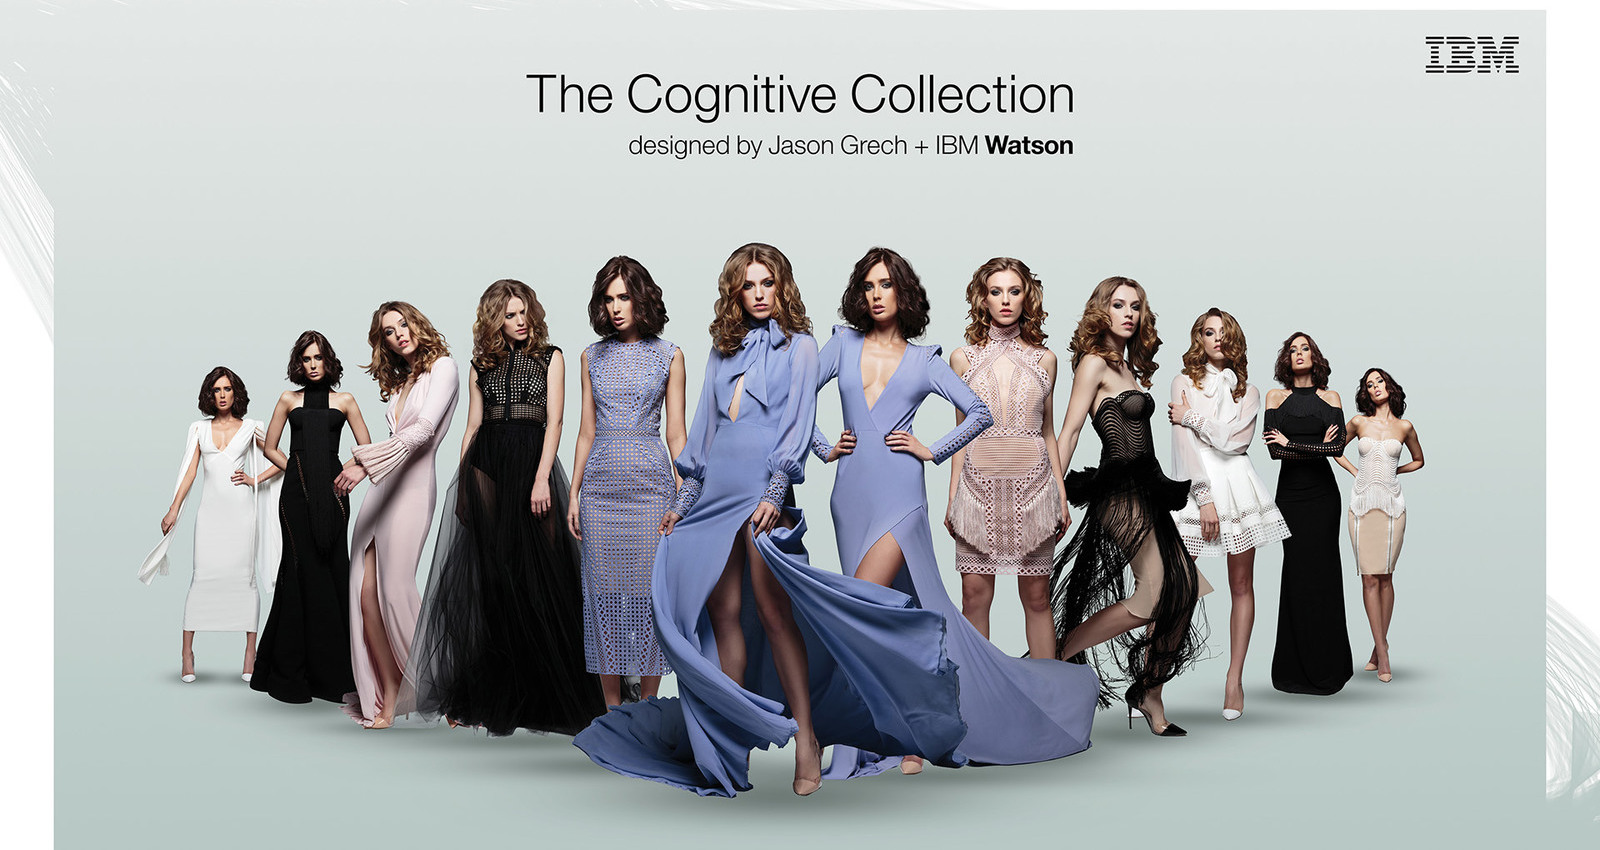 The Cognitive Collection designed by Jason Grech + IBM Watson